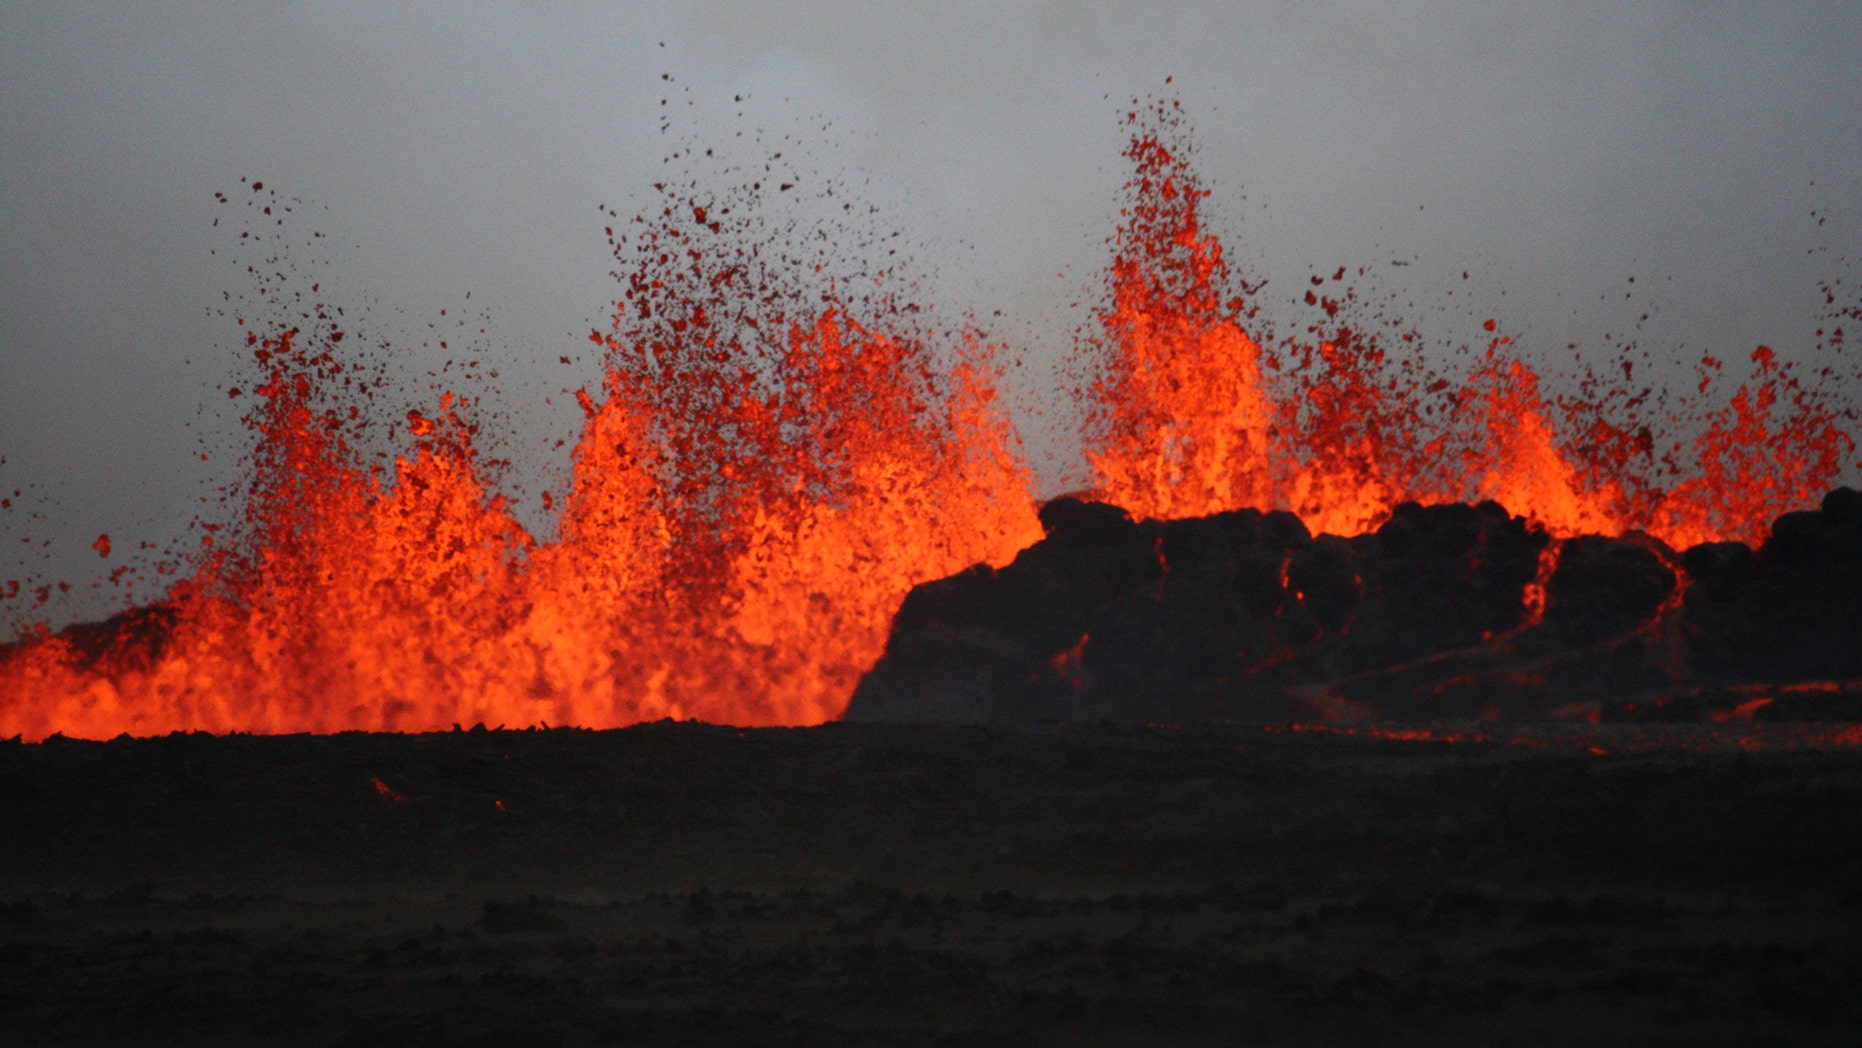 File photo: The lava flows on the ground after the Bardabunga volcano erupted again on August 31, 2014. (REUTERS/Armann Hoskuldsson)